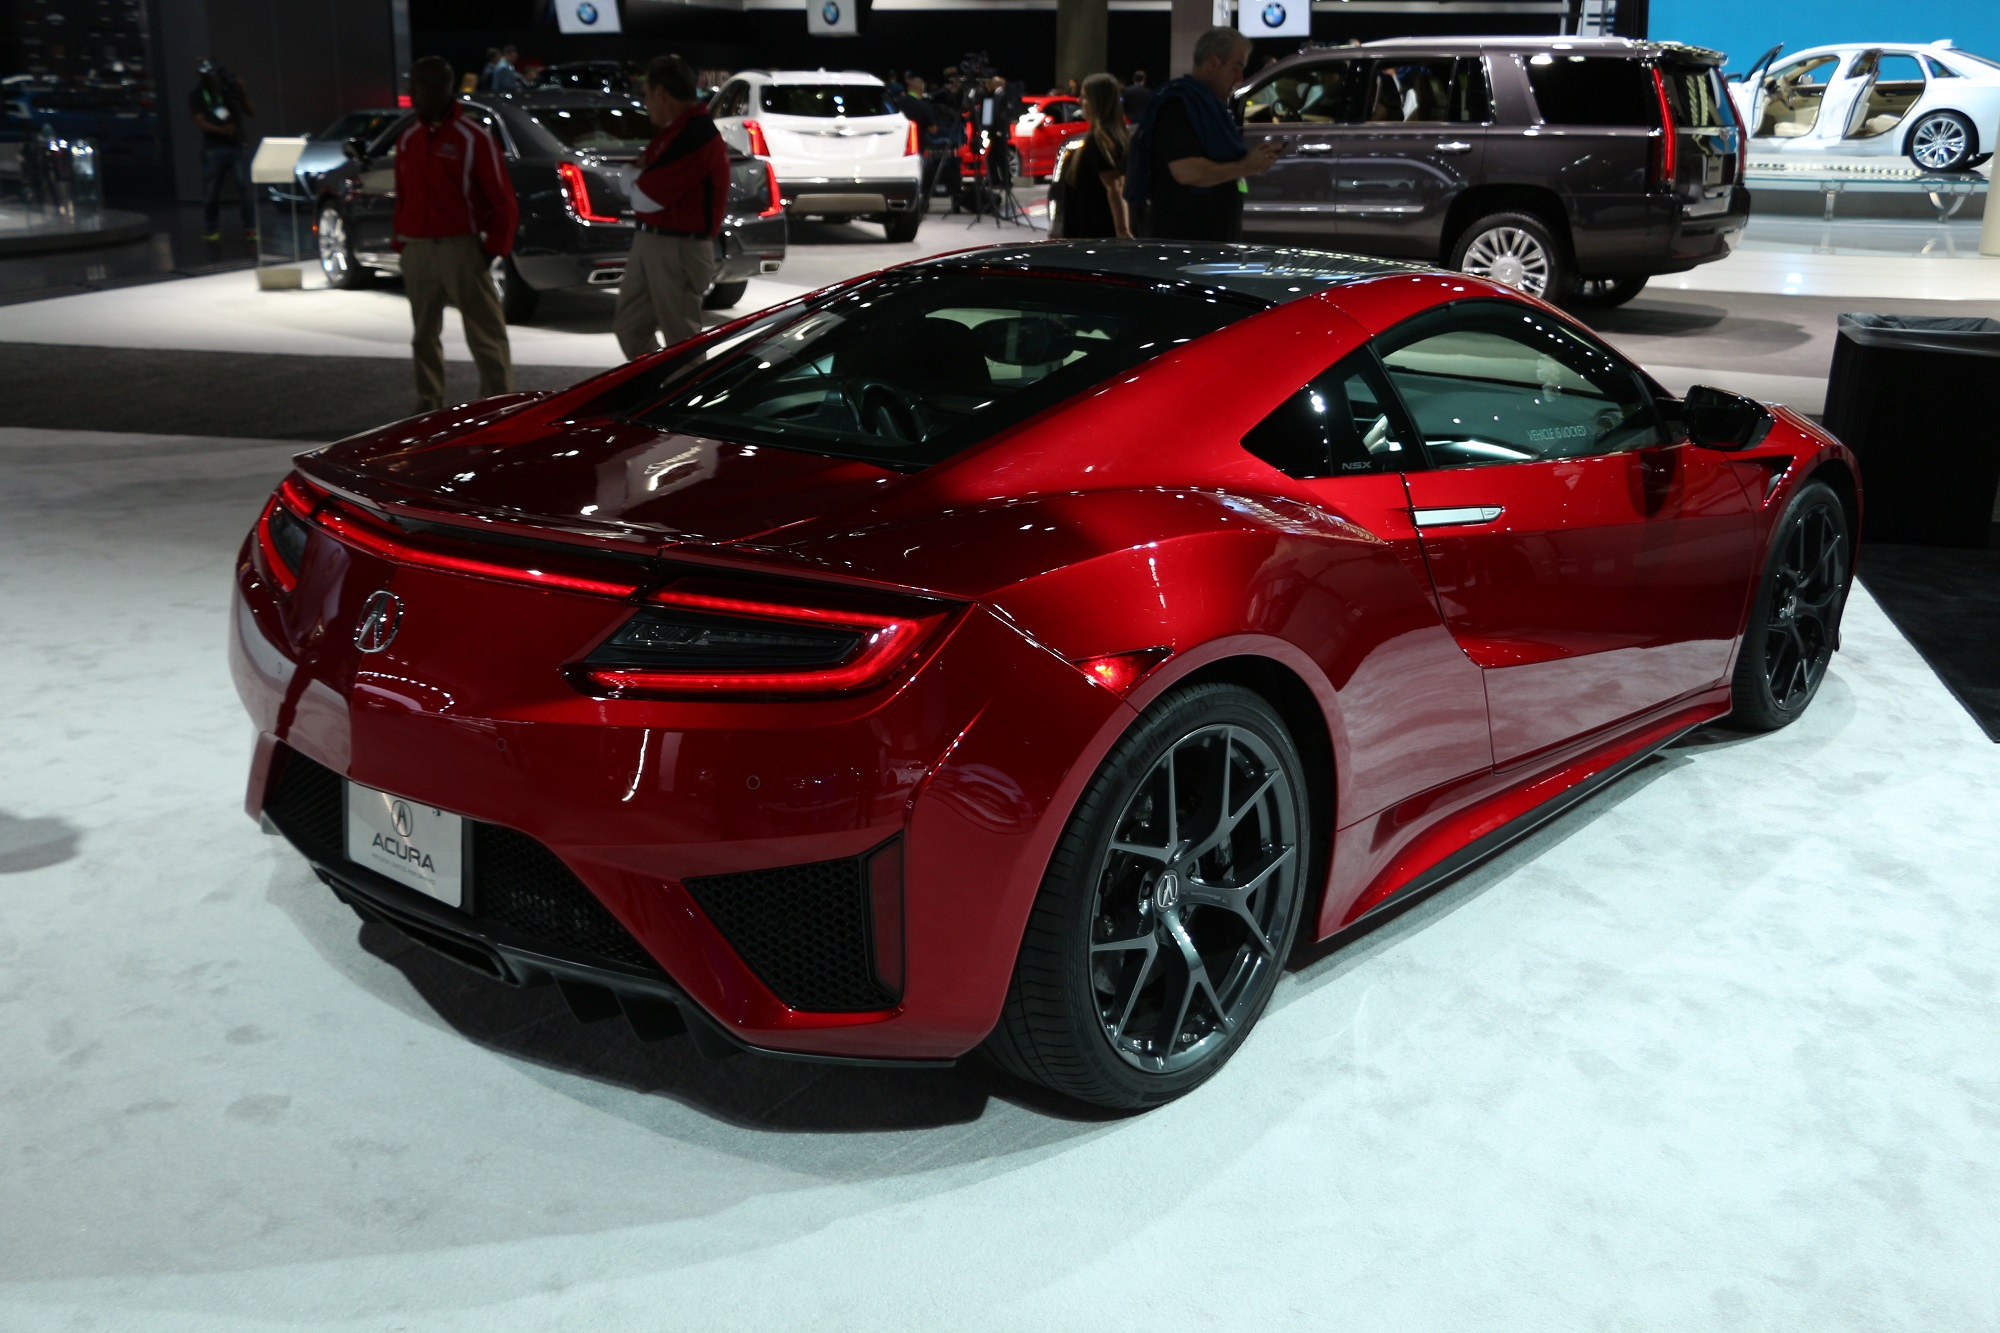 Acura At The Los Angeles Auto Show Gallery HondaTech - Los angeles car show 2018